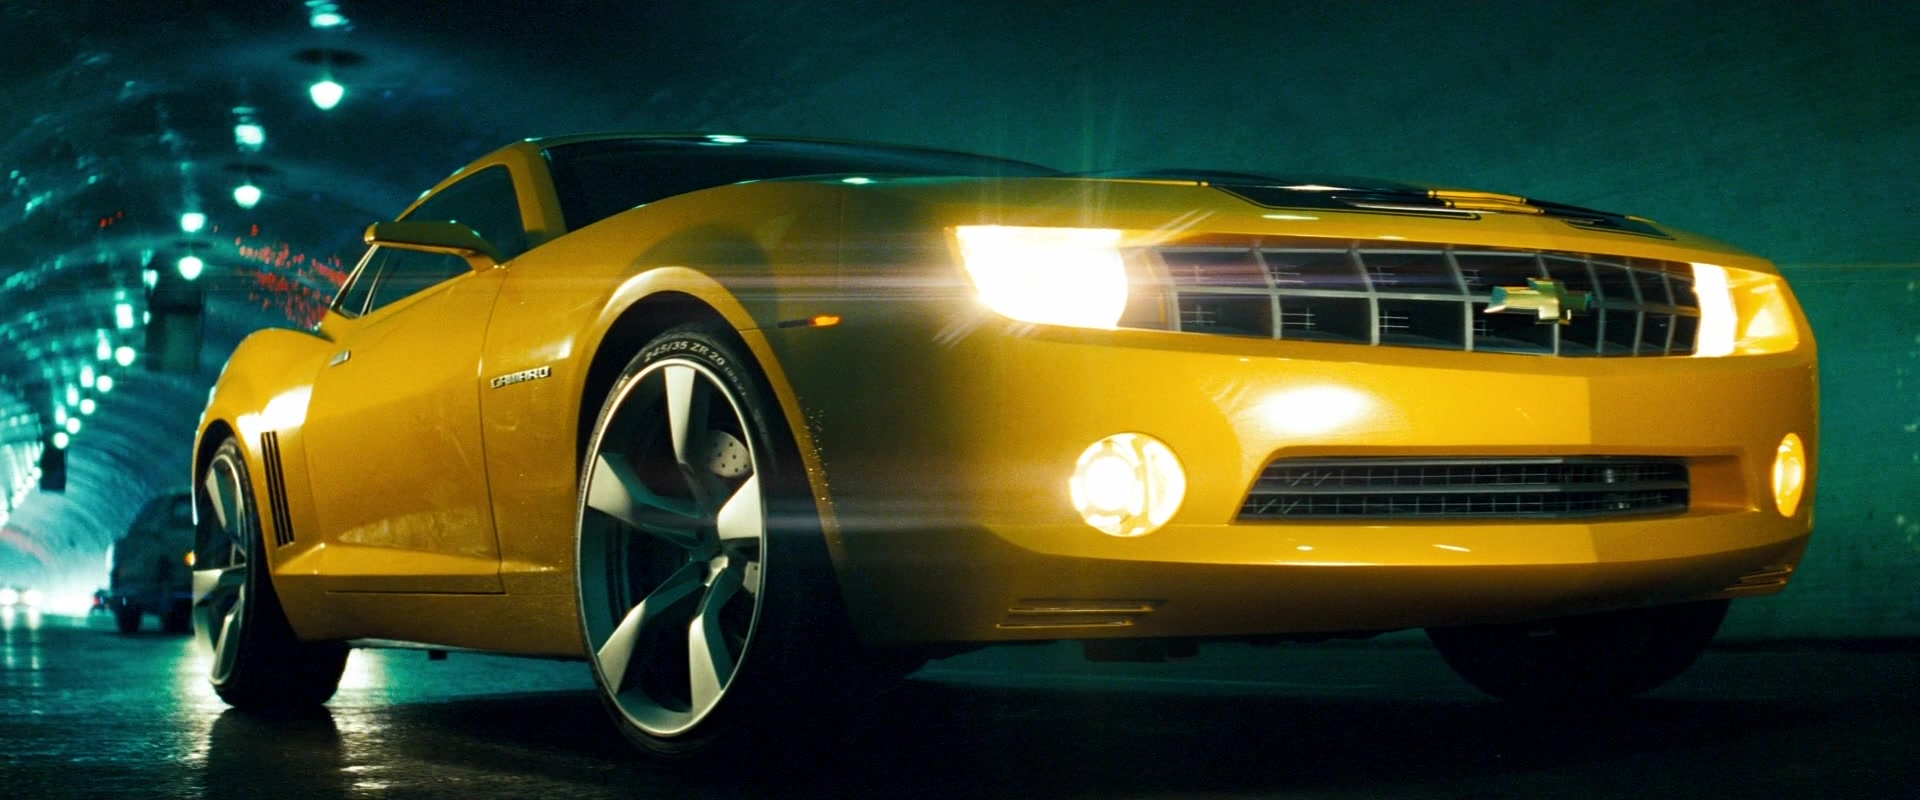 Chevrolet Camaro Yellow Car in Transformers (2007) Movie